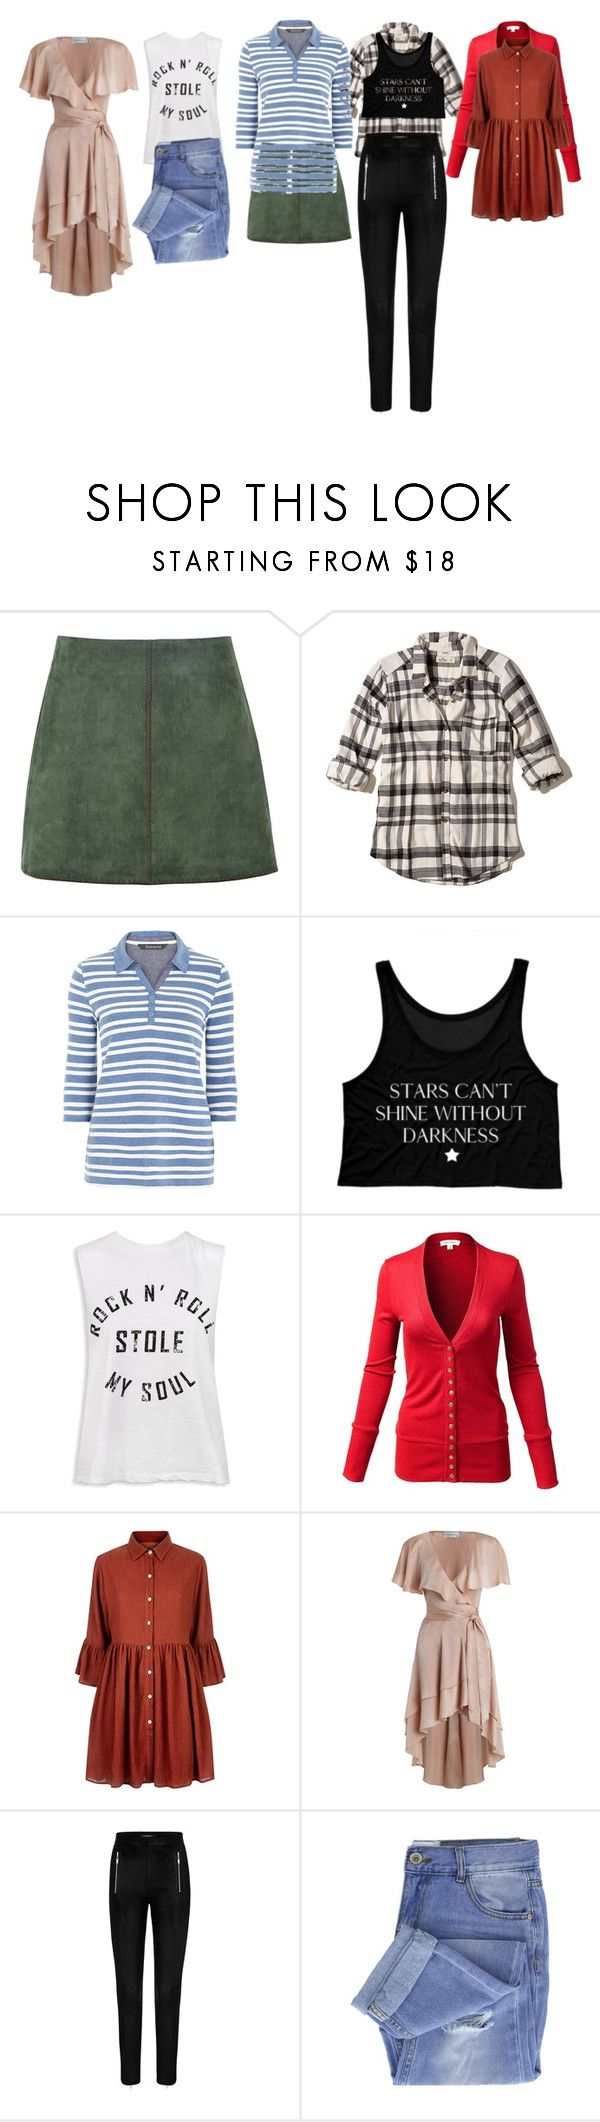 """""""Untitled #6862"""" by aurorazoejadefleurbiancasarah ❤ liked on Polyvore featuring George J. Love, Hollister Co., Sans Souci, Mela Loves London, Zimmermann and Taya"""